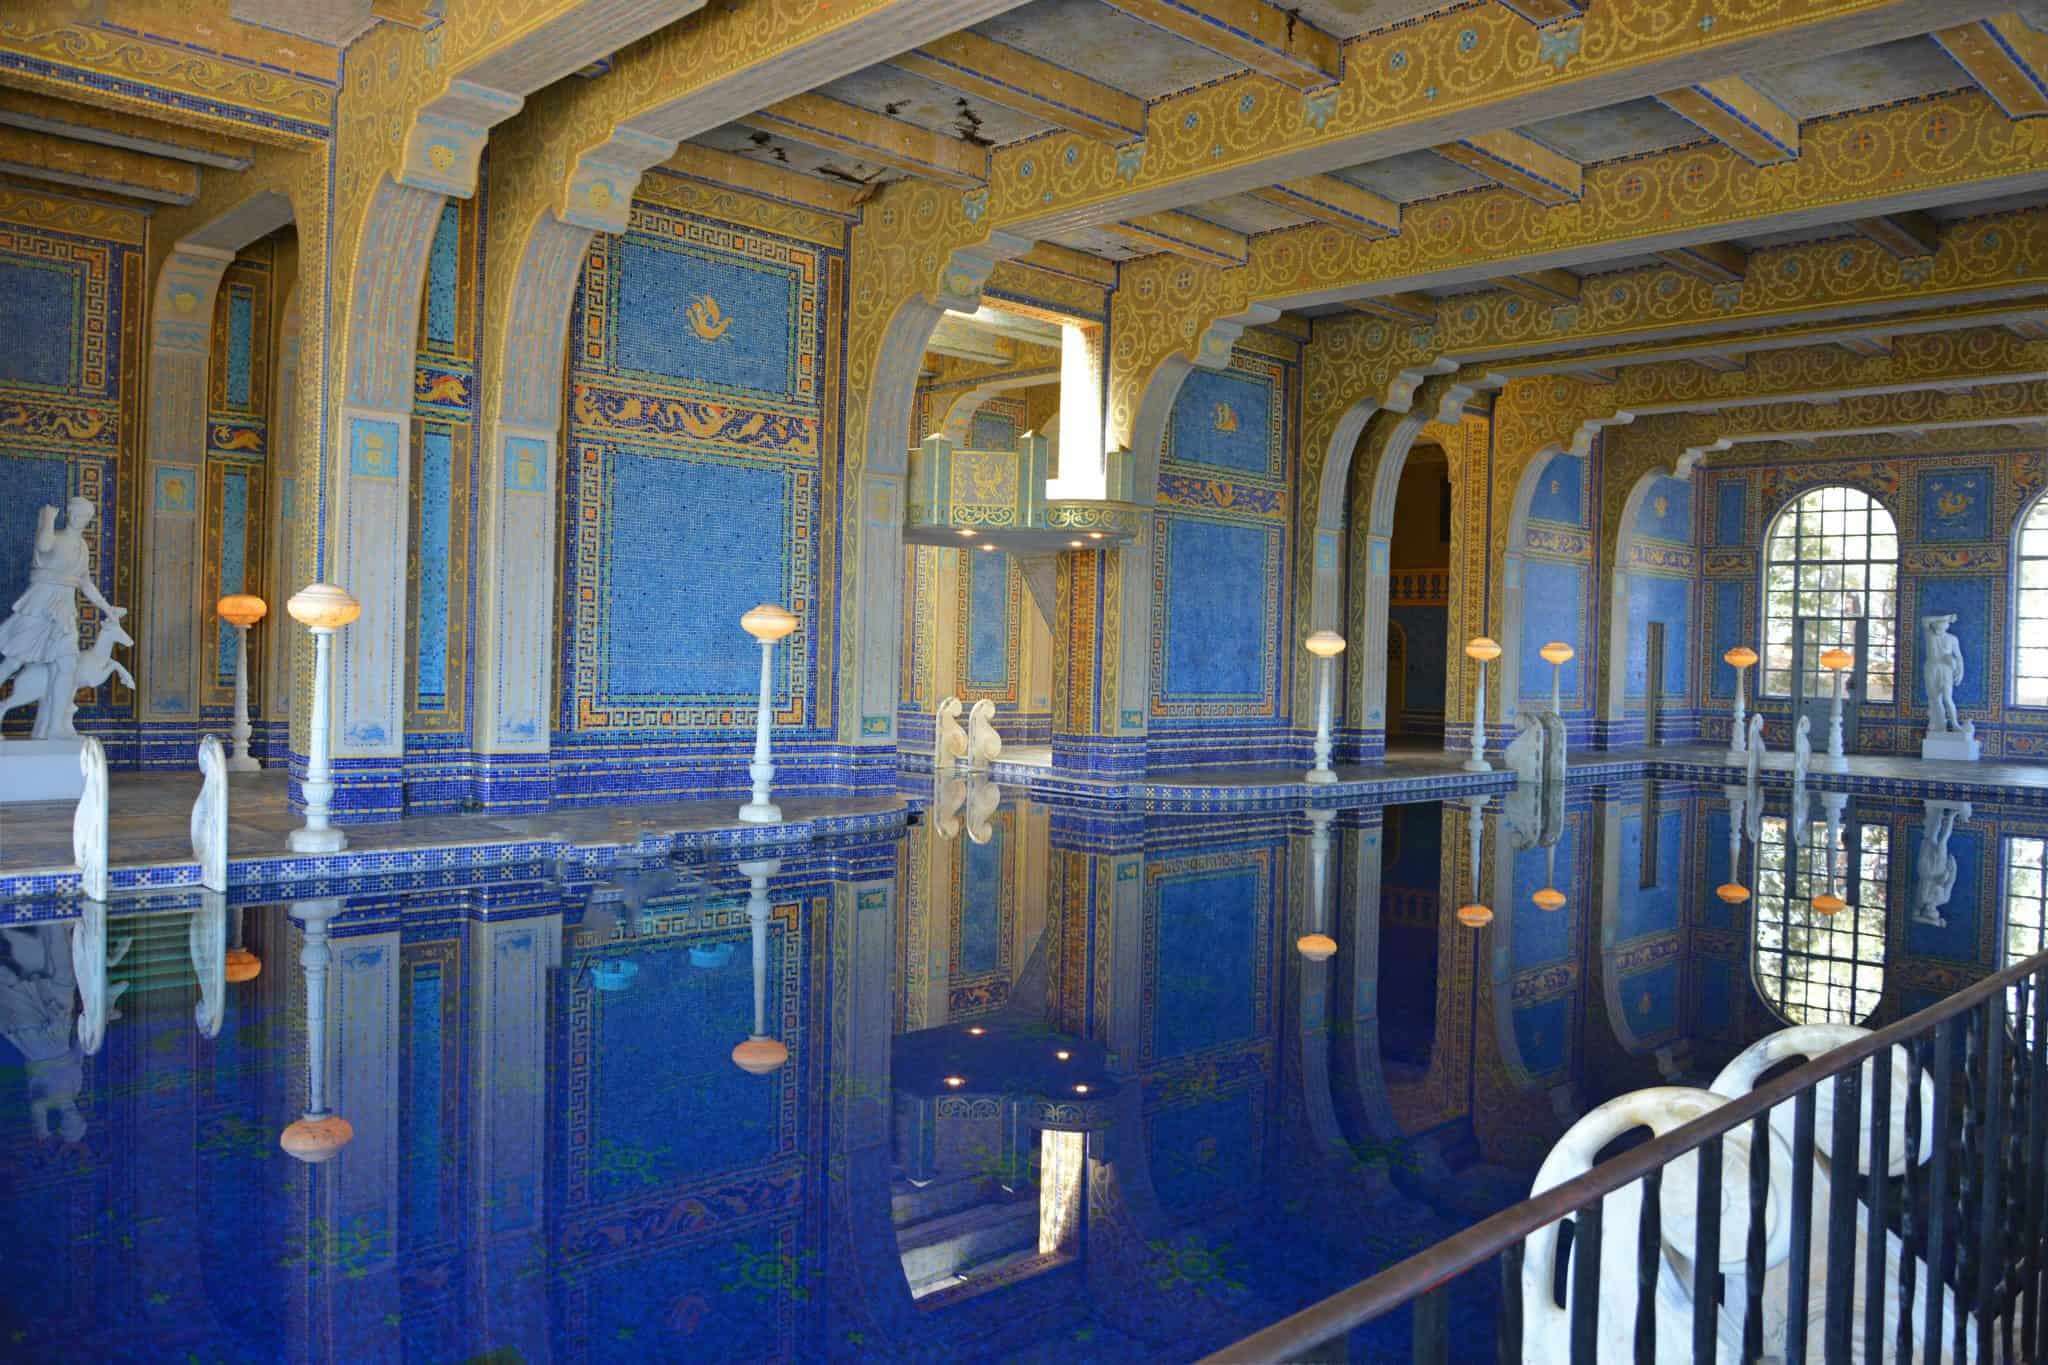 hearst castle: 8 things to before visiting - savory experiments